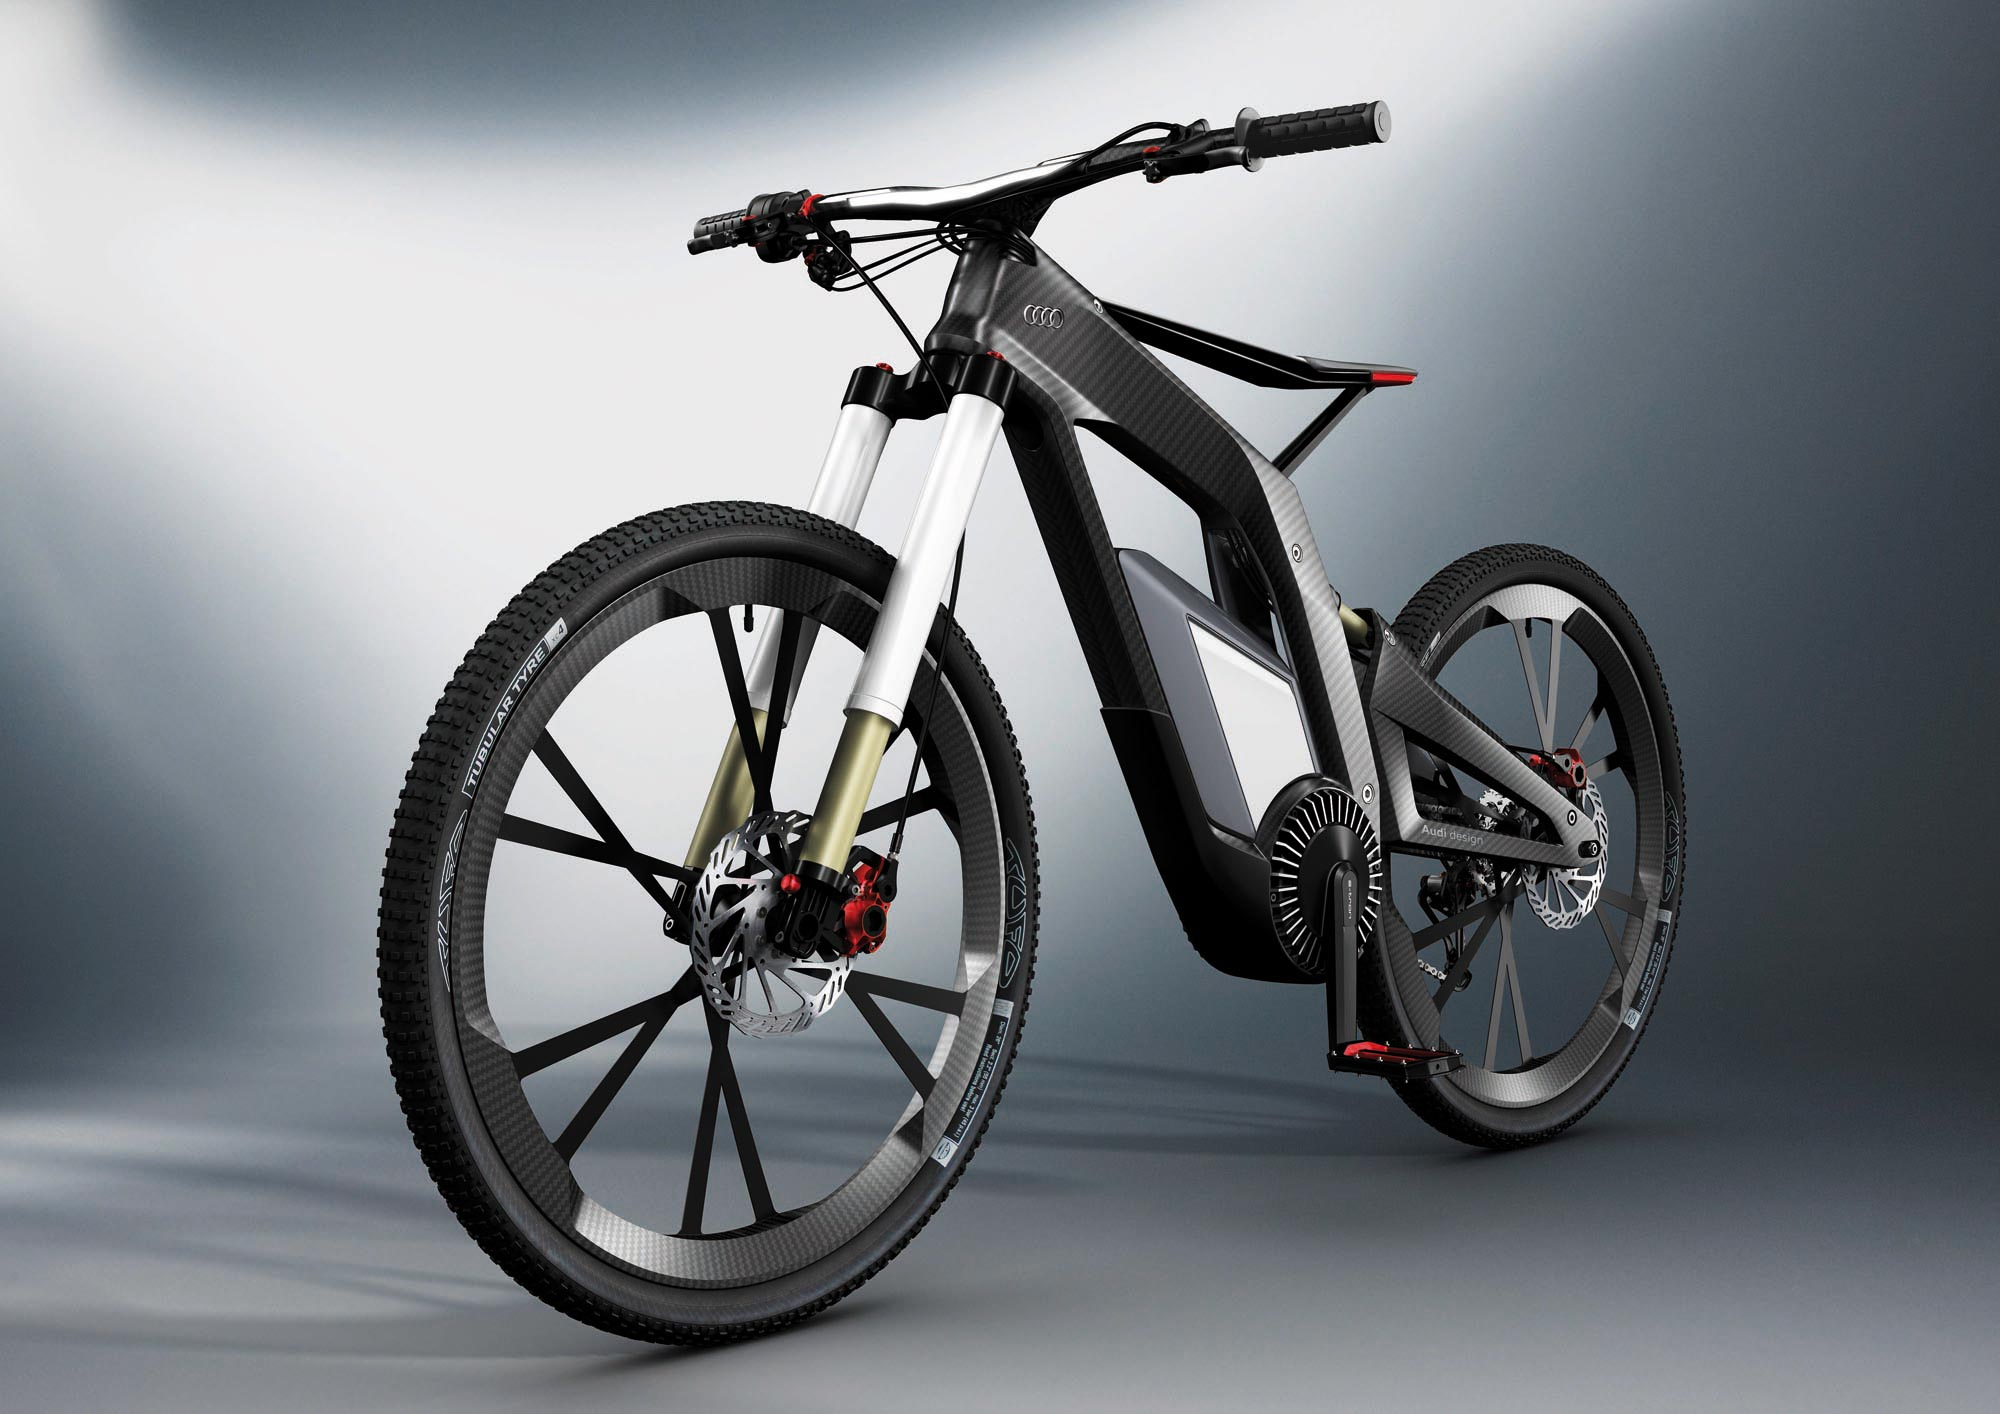 A new kind of vehicle is an electric bike